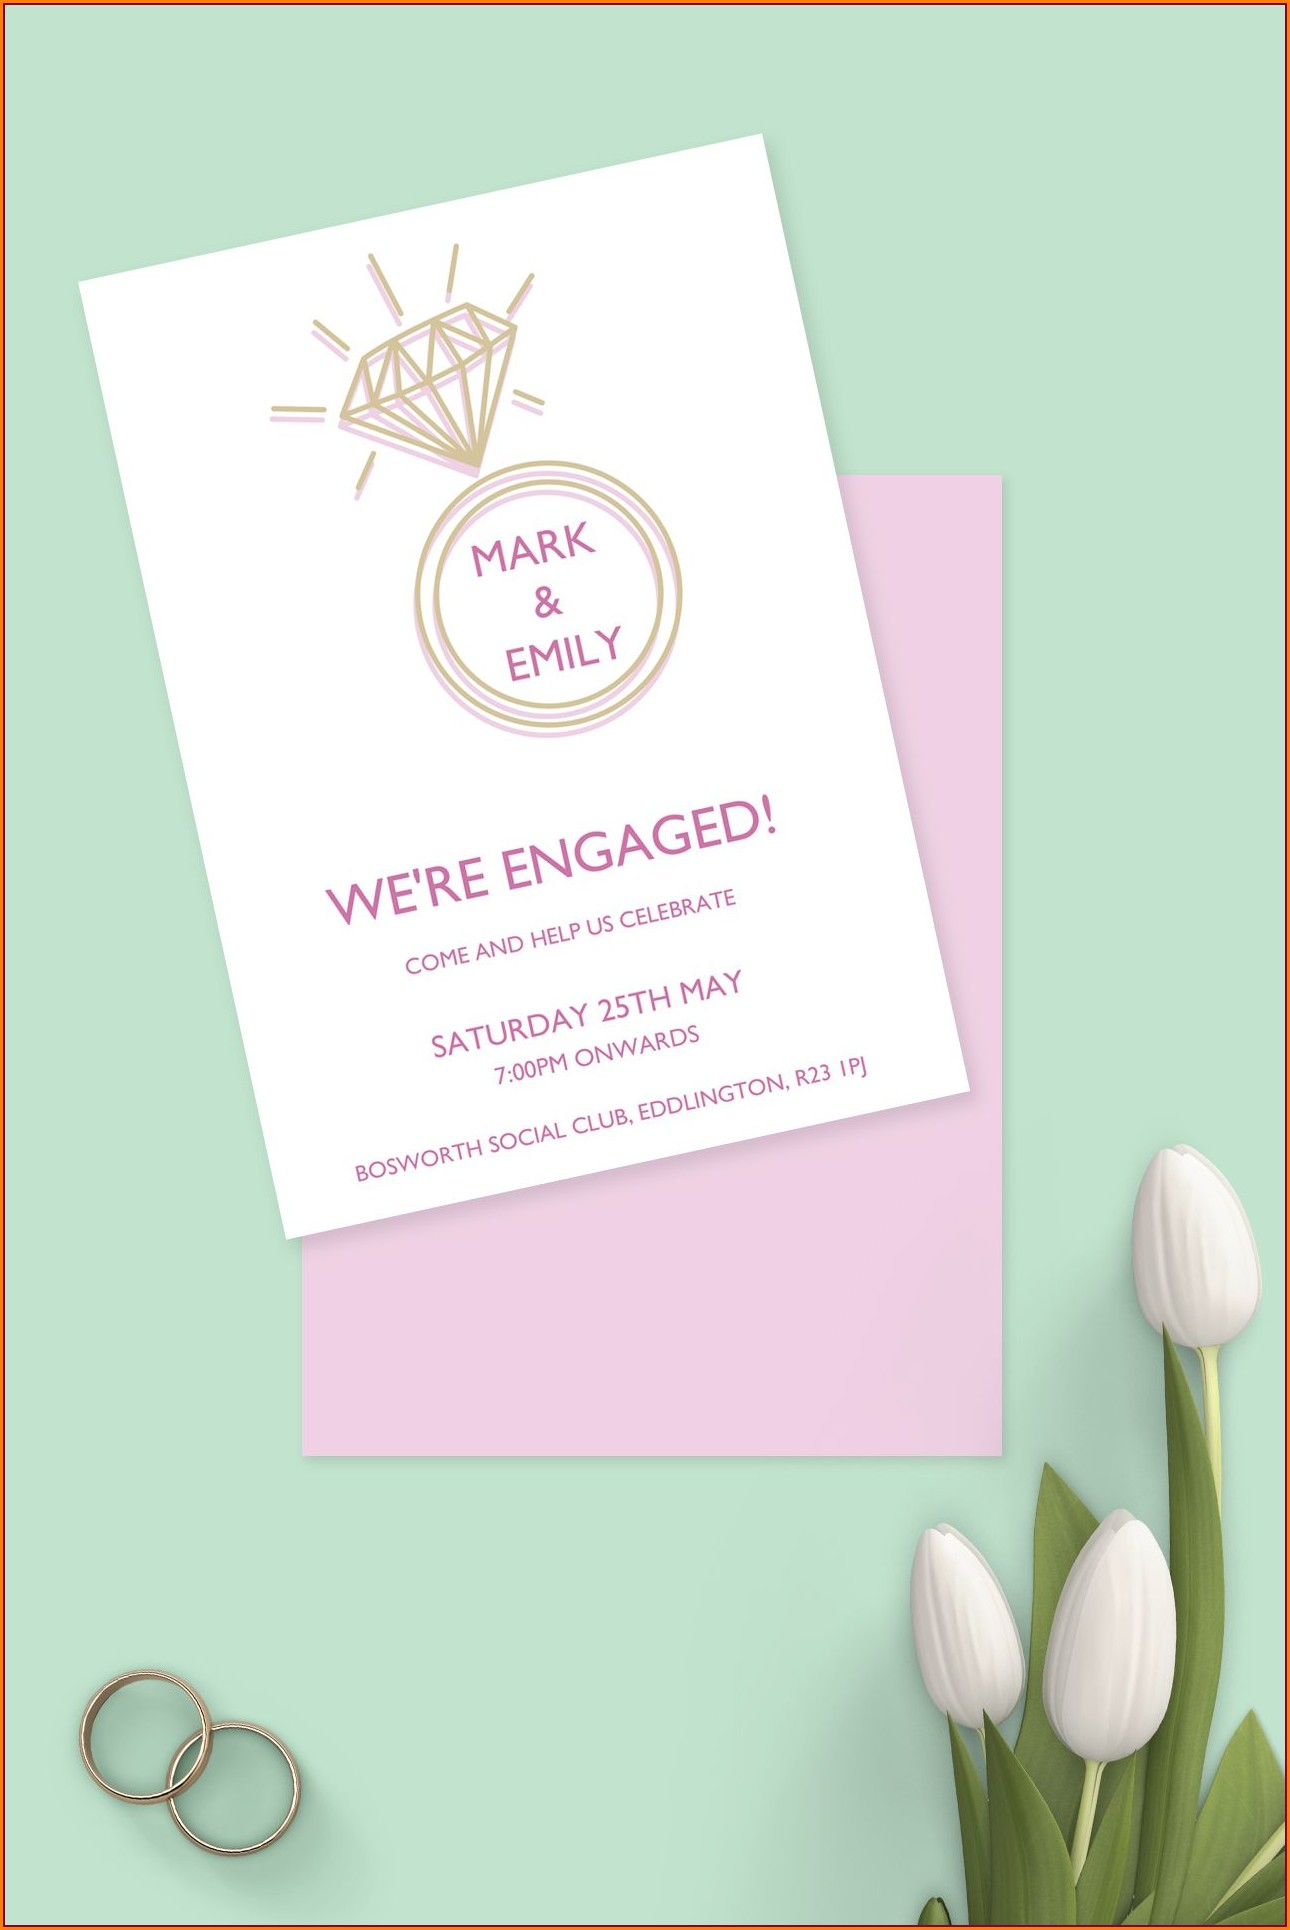 Create Your Own Wedding Invitations Free Online